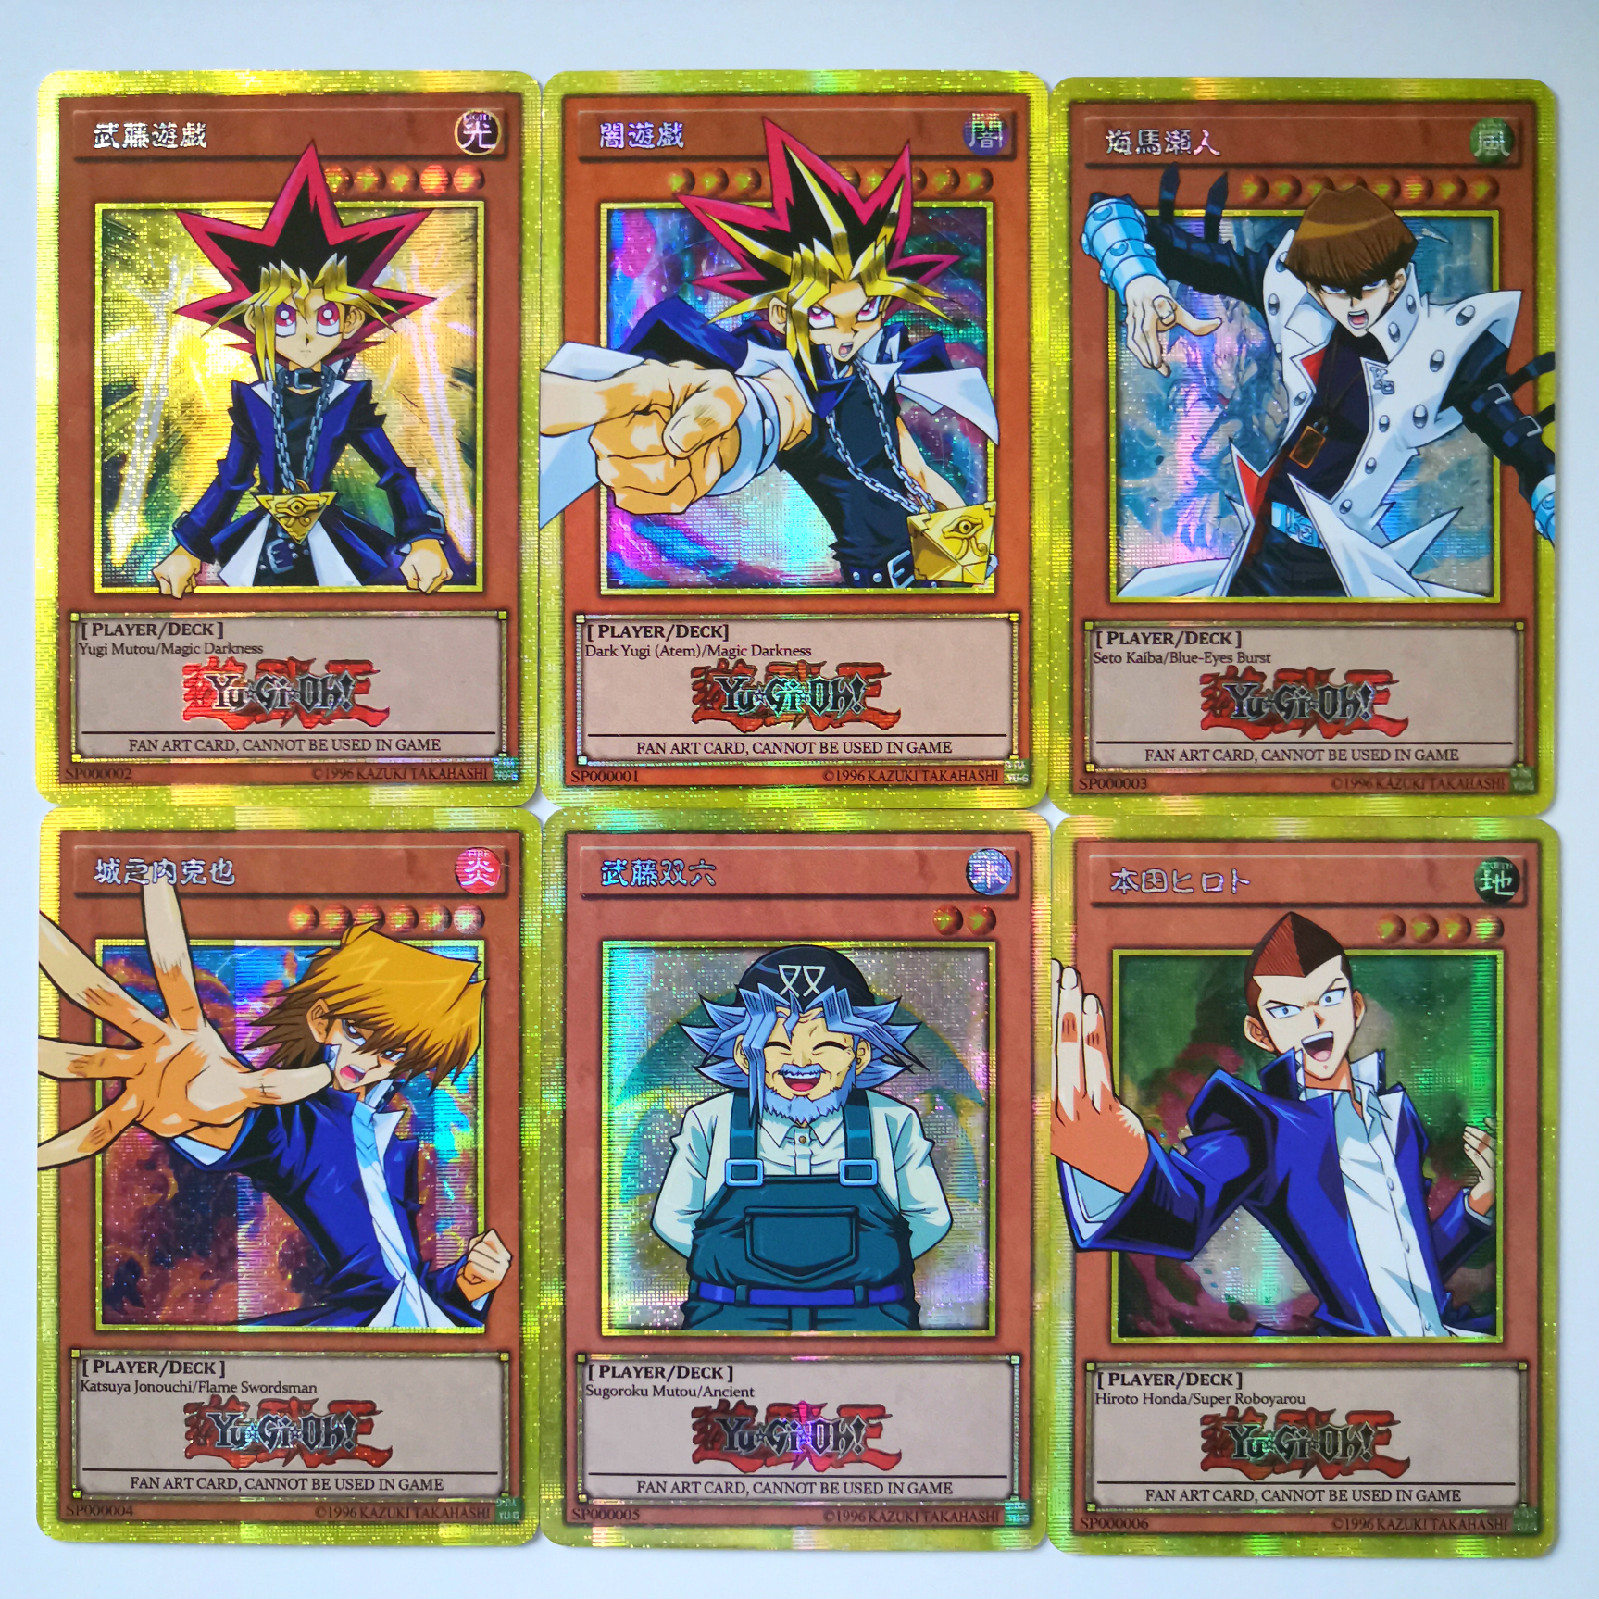 27pcs/set Yu Gi Oh First Generation Character Flash Card Toys Hobbies Hobby Collectibles Game Collection Anime Cards